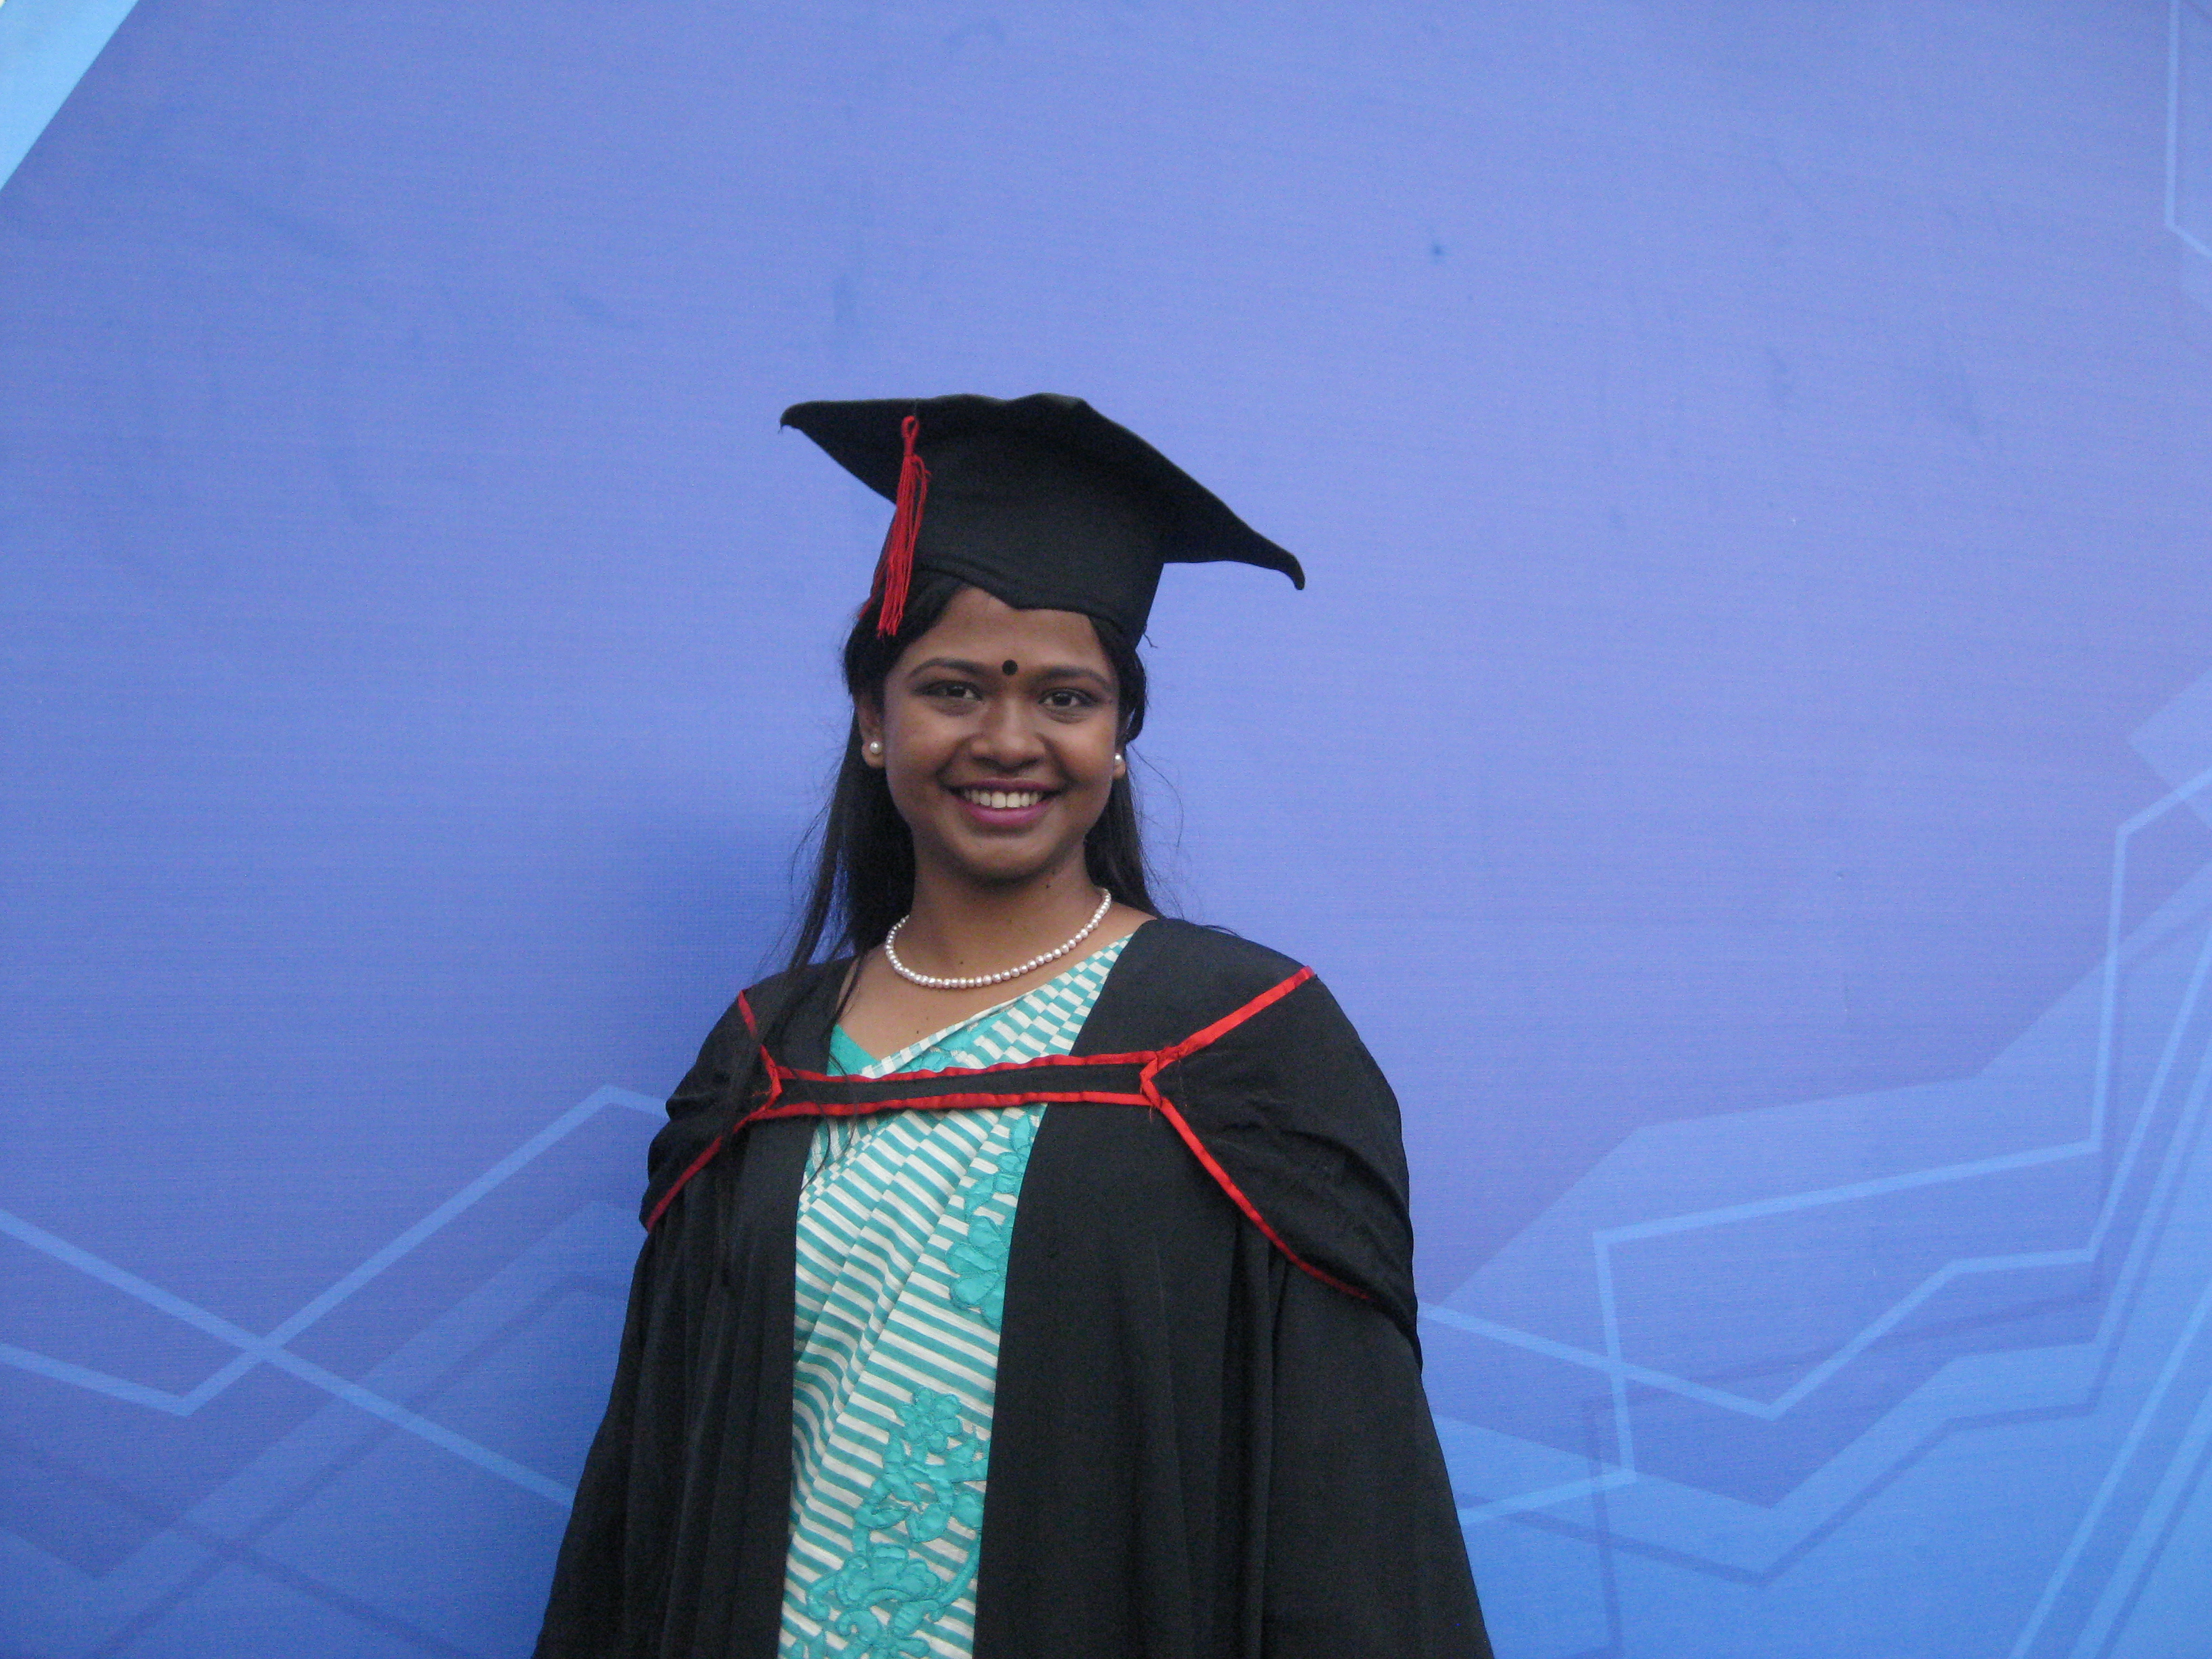 Academic_Dress_of_Graduate_Students_of_University_of_Dhaka.jpg (3264×2448)